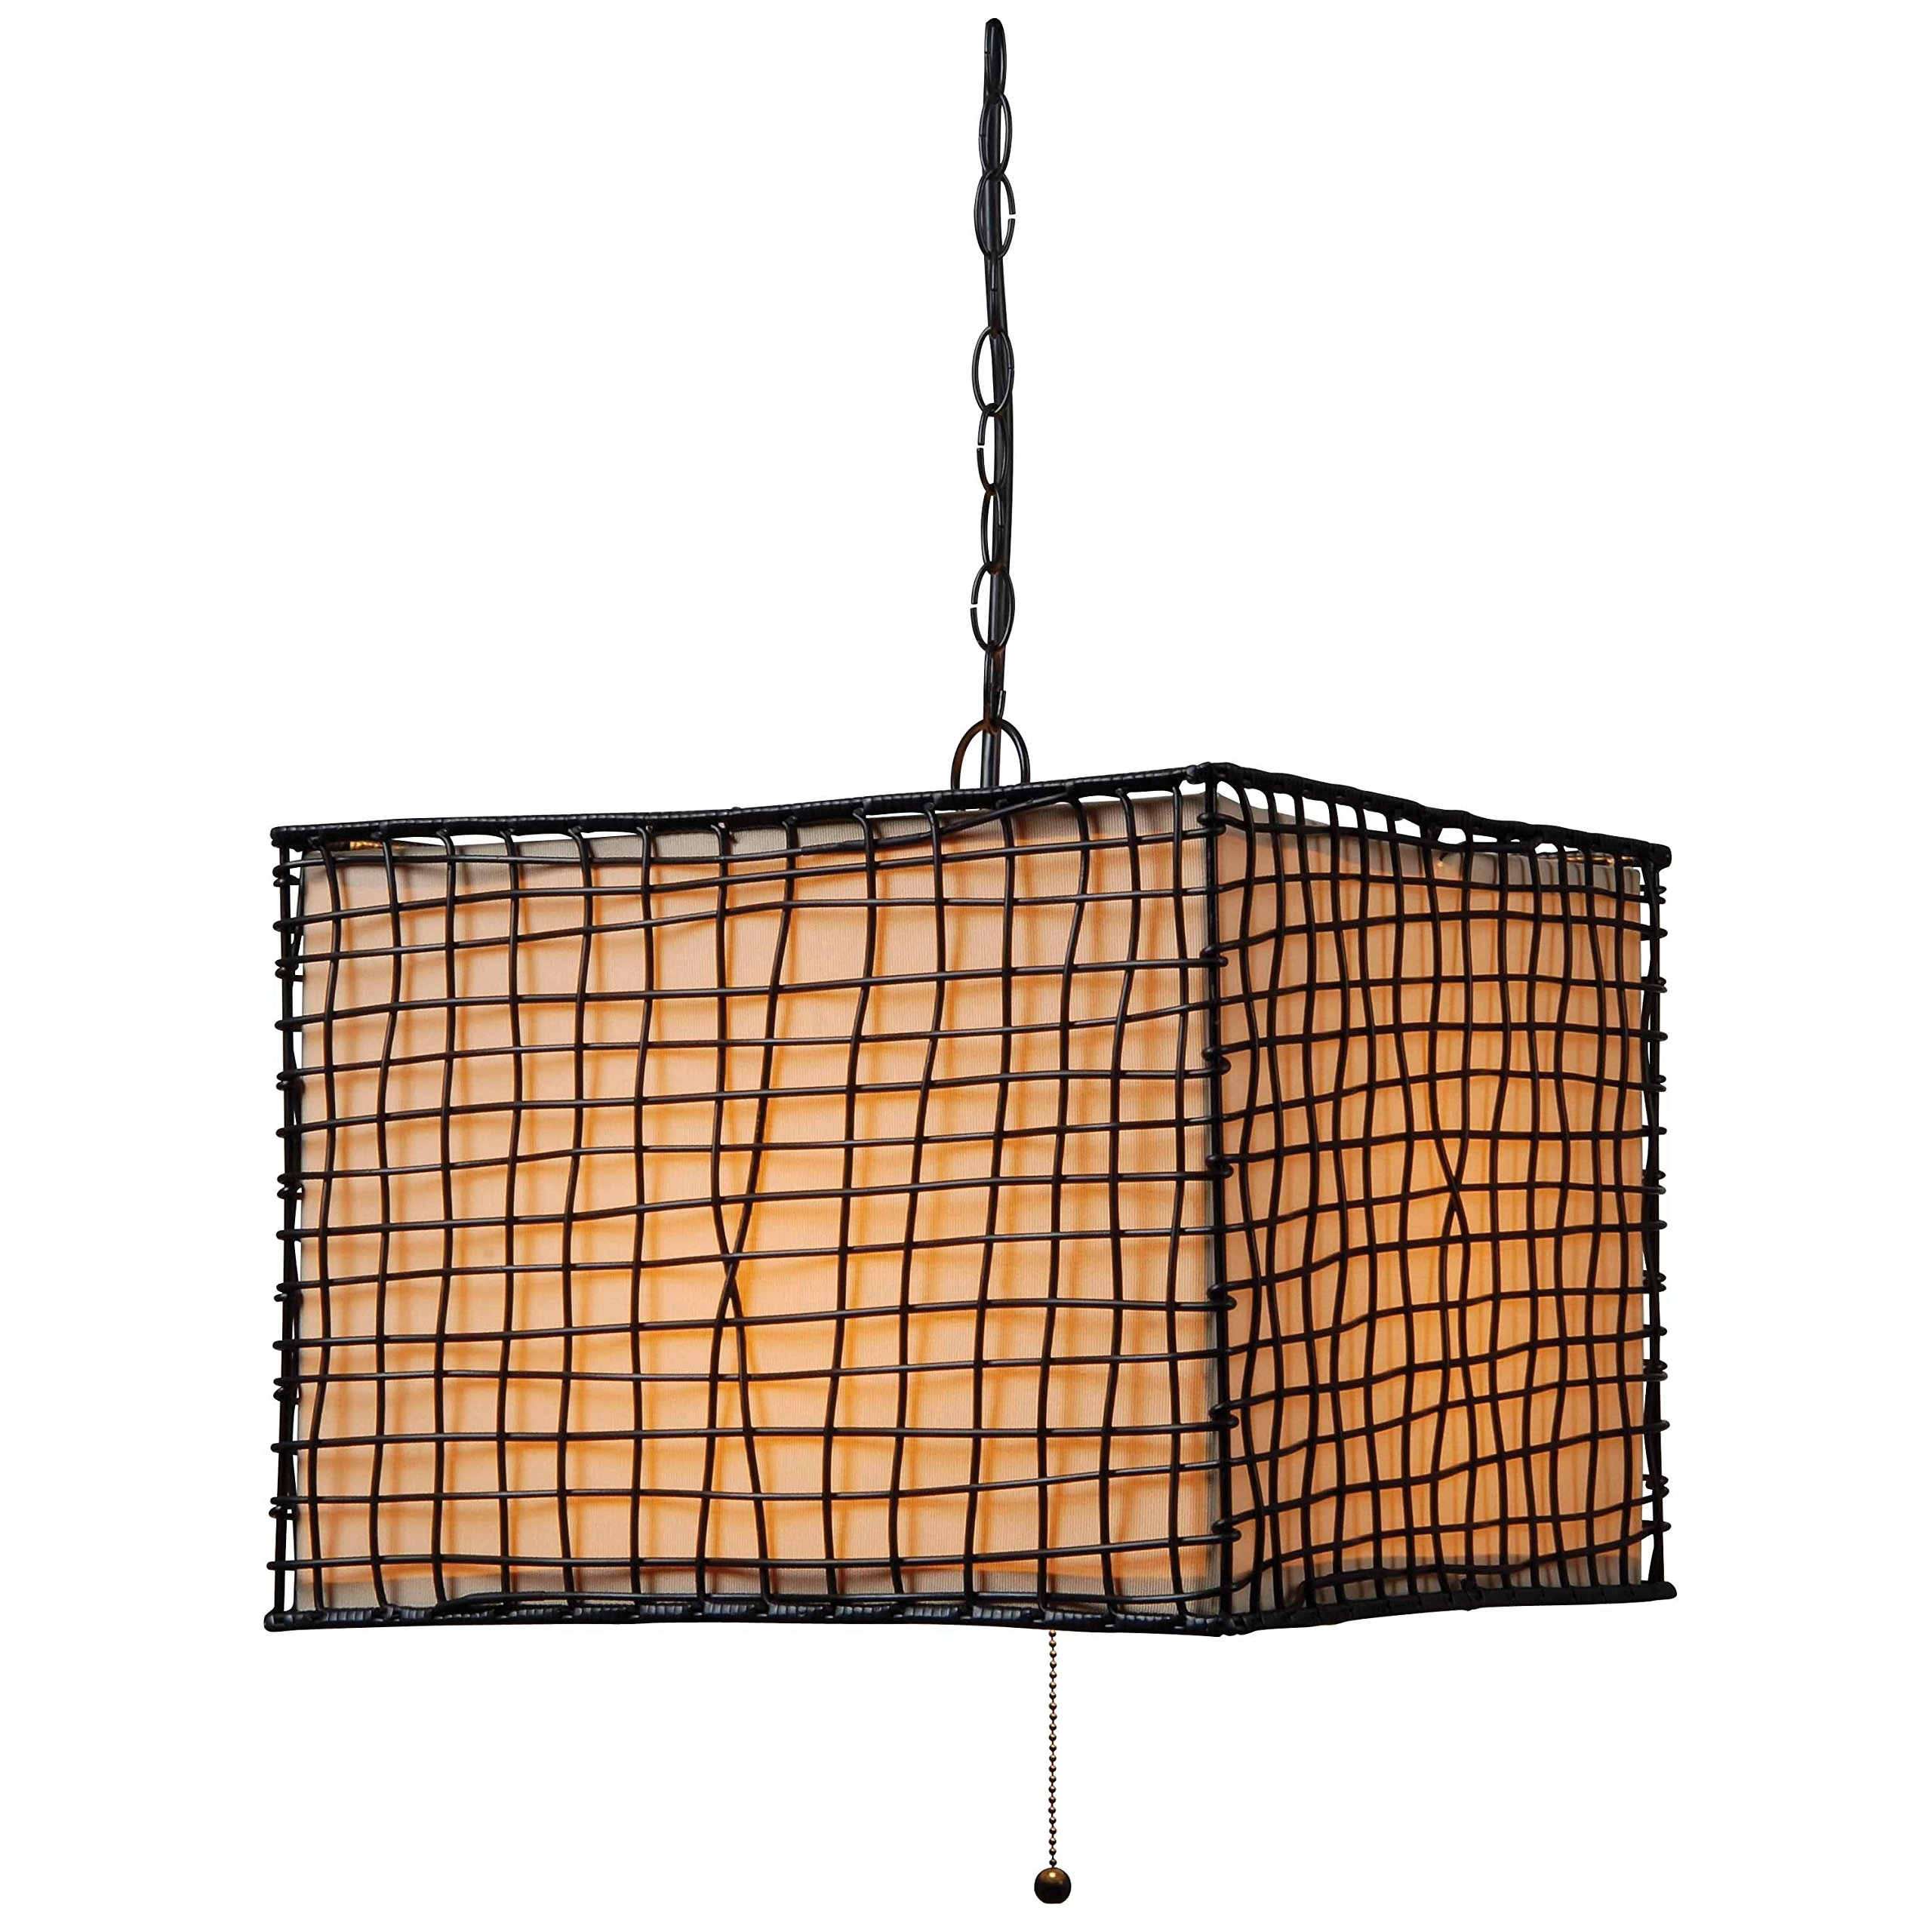 Design Craft Lyerly Indoor/ Outdoor Blackened Bronze 1-light Pendant by Design Craft